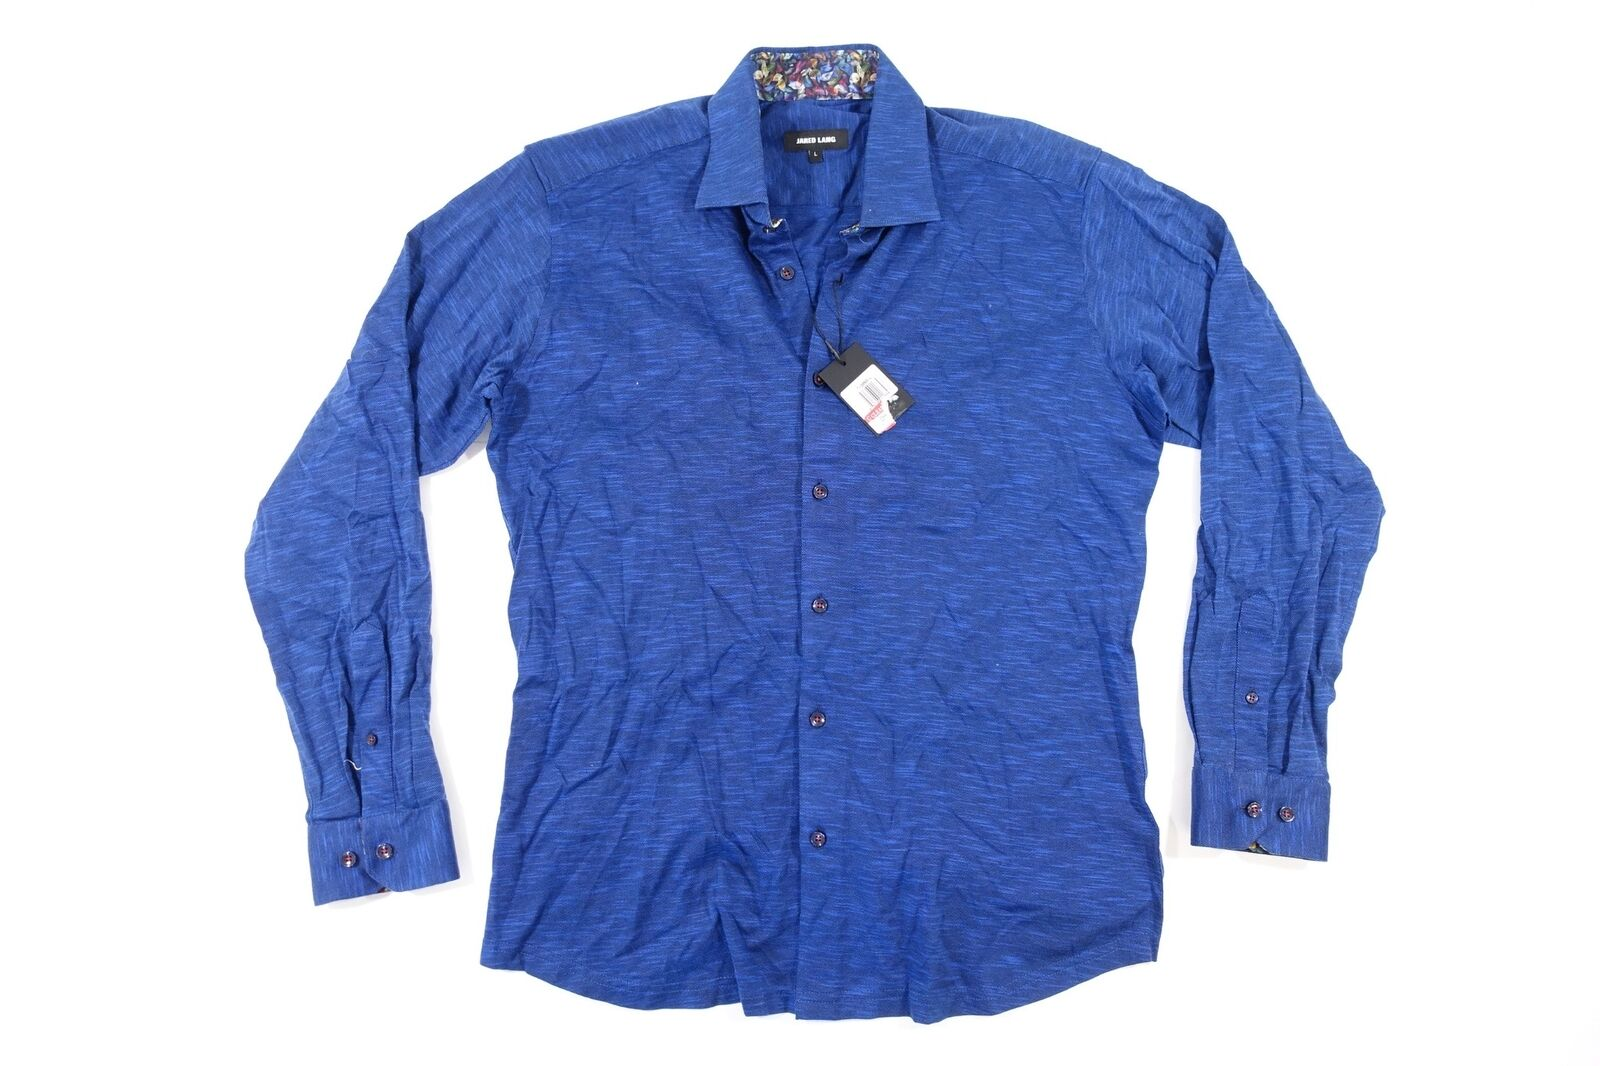 JARED LANG blueE LARGE SOFT WOVEN BUTTON FRONT SHIRT MENS NWT NEW